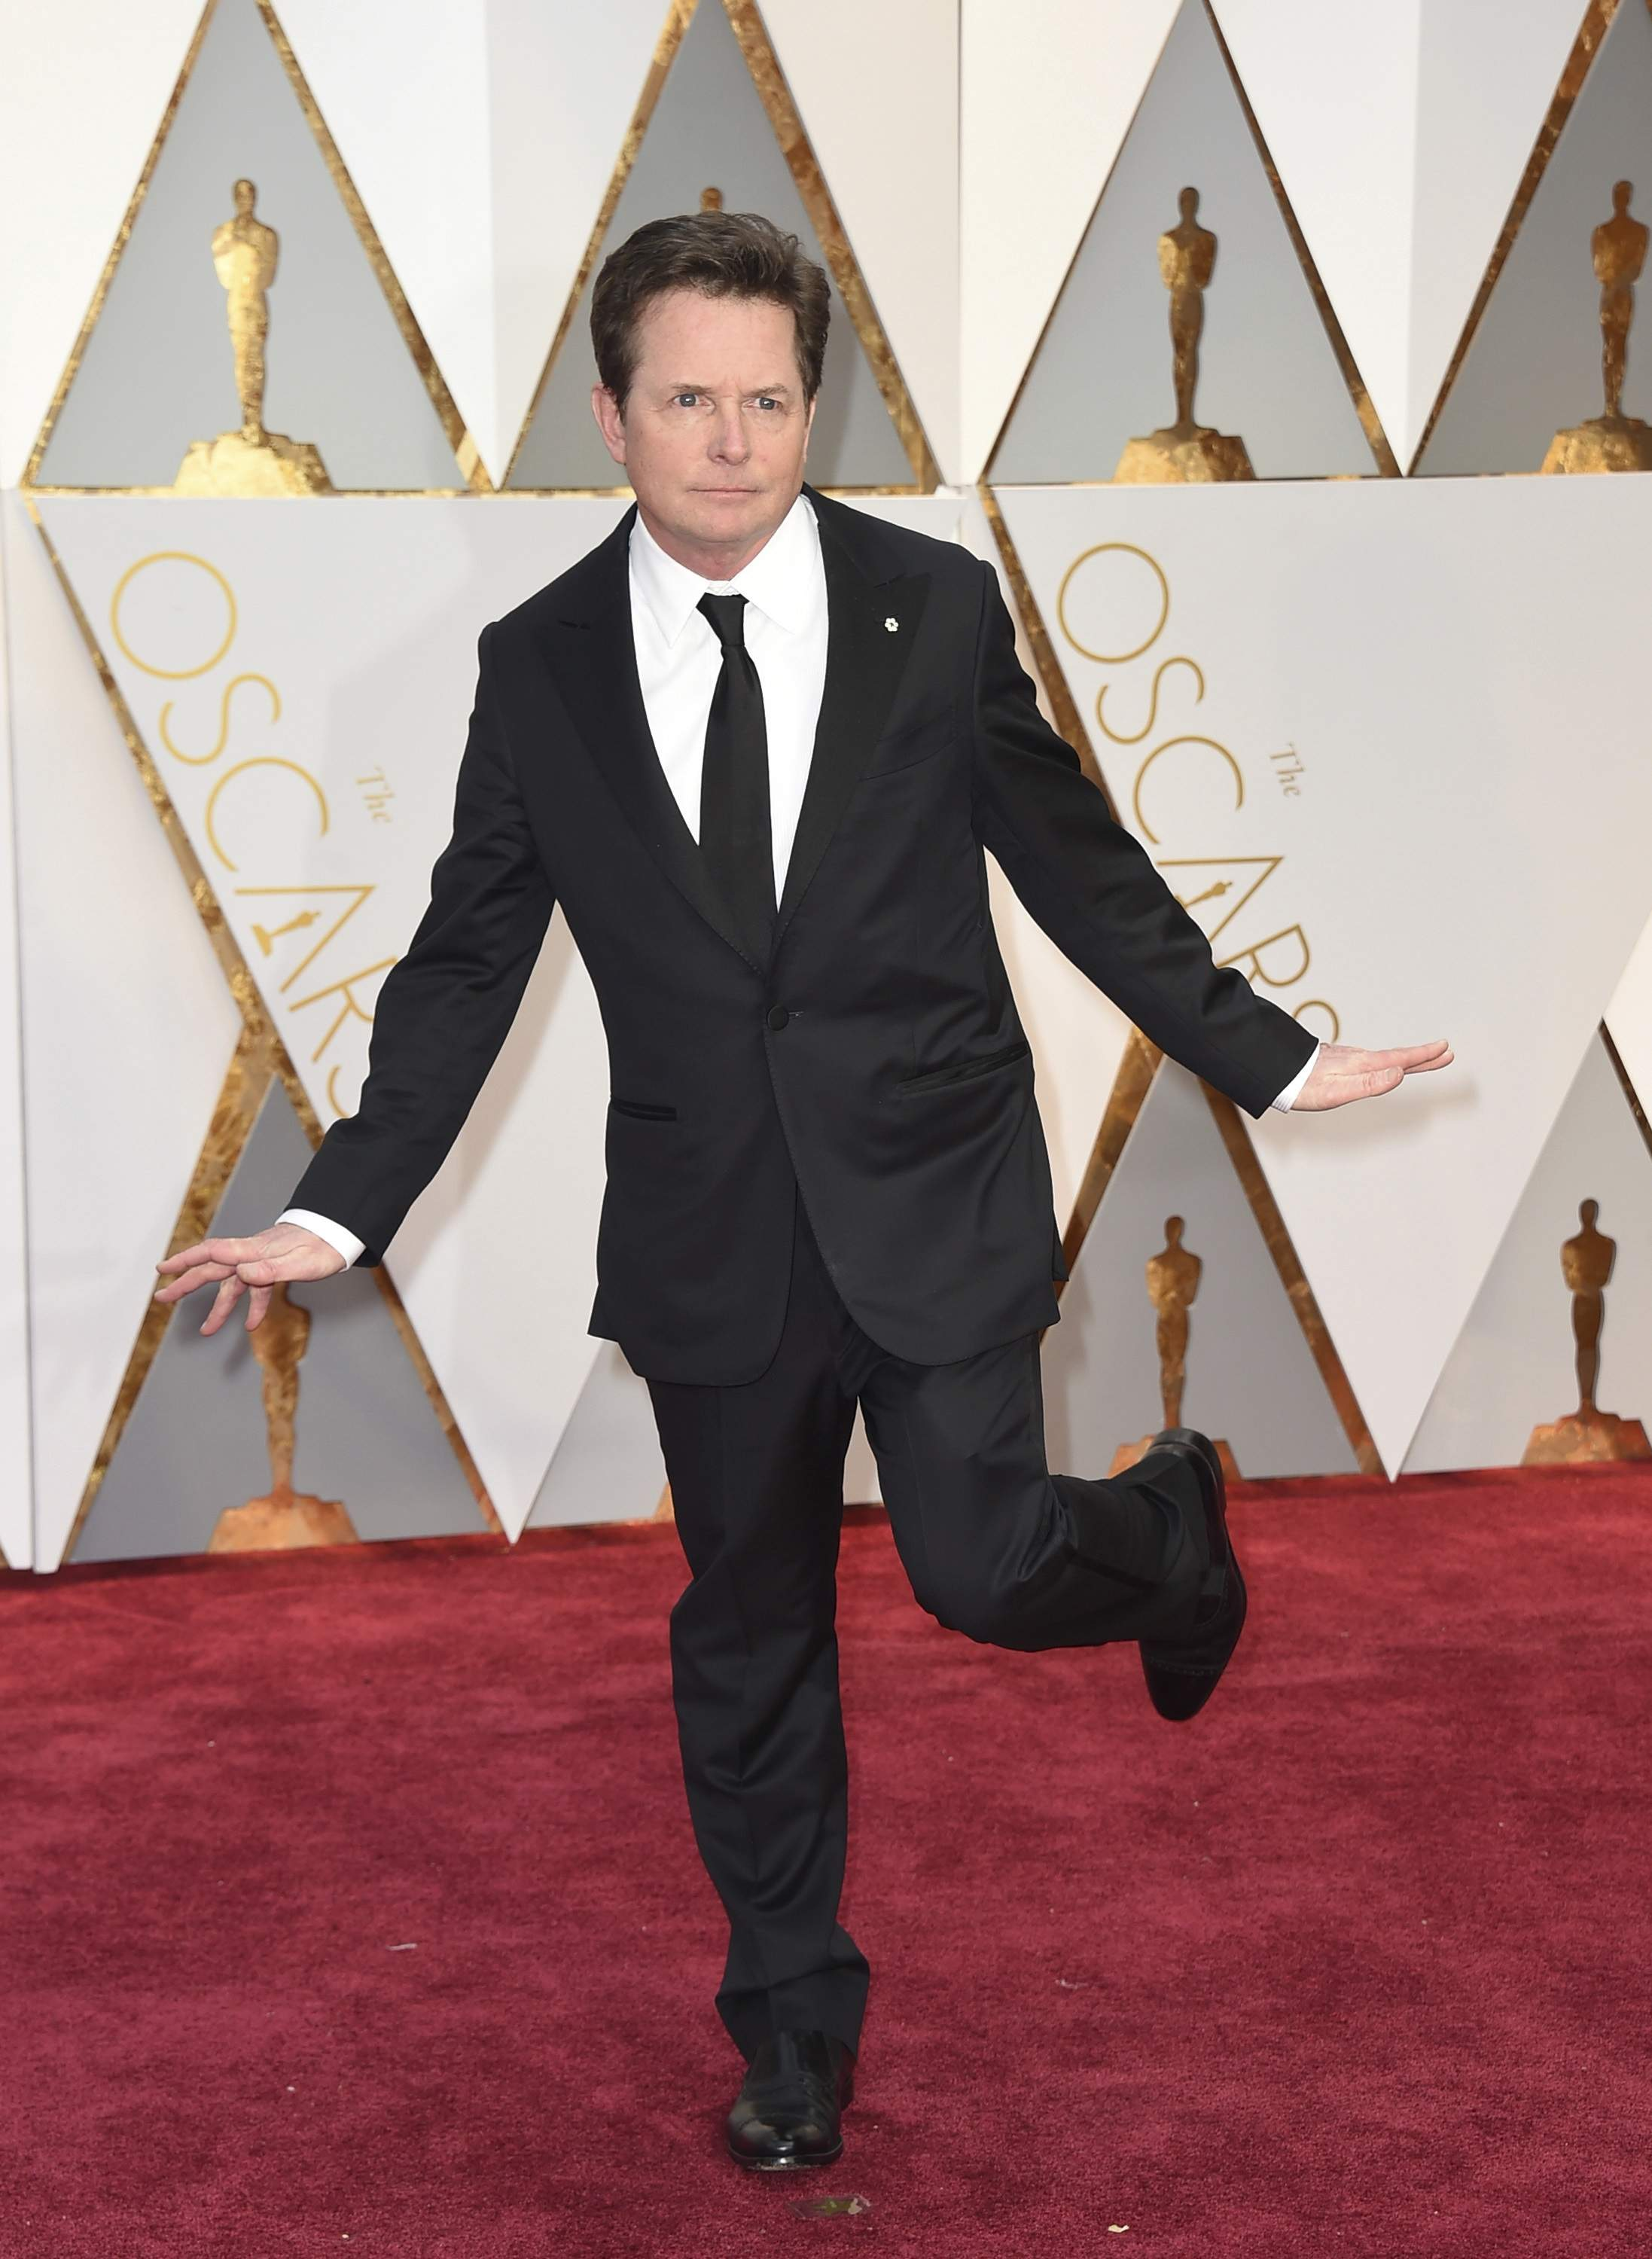 Michael J. Fox arrives at the Oscars on Sunday, Feb. 26, 2017, at the Dolby Theatre in Los Angeles. THE ASSOCIATED PRESS